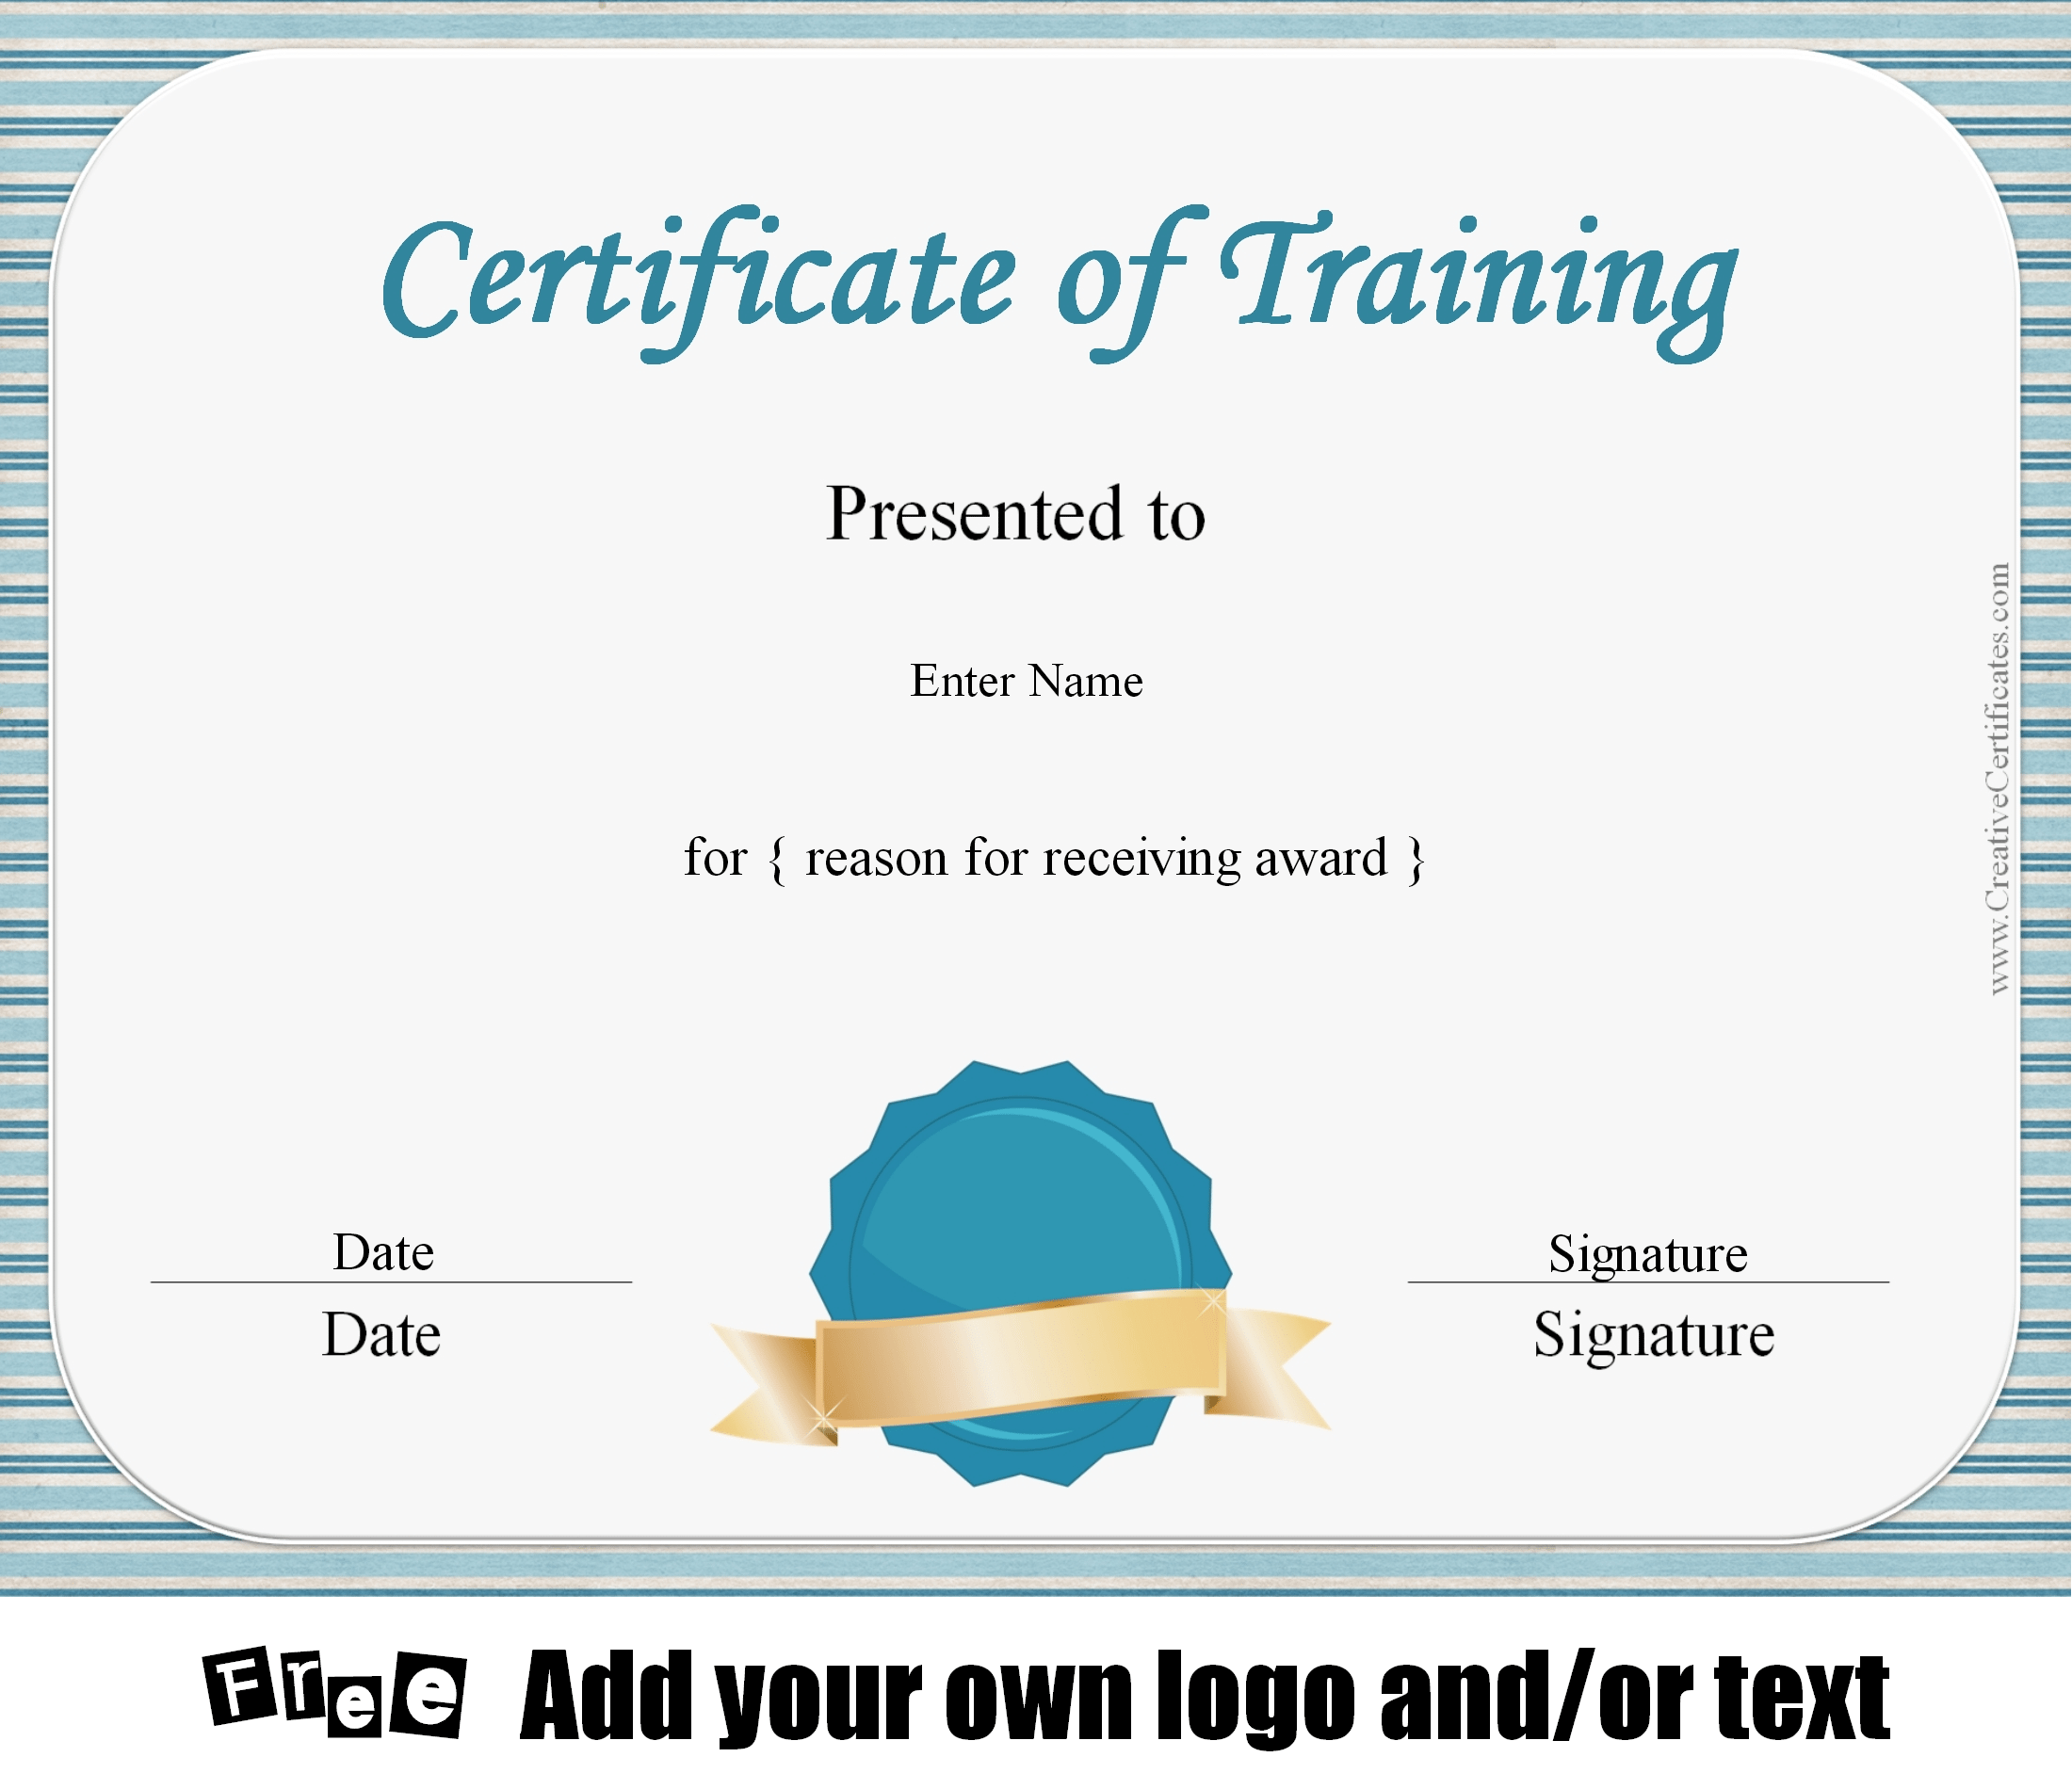 Marvelous How To Add A Logo To Your Certificate Of Training Template